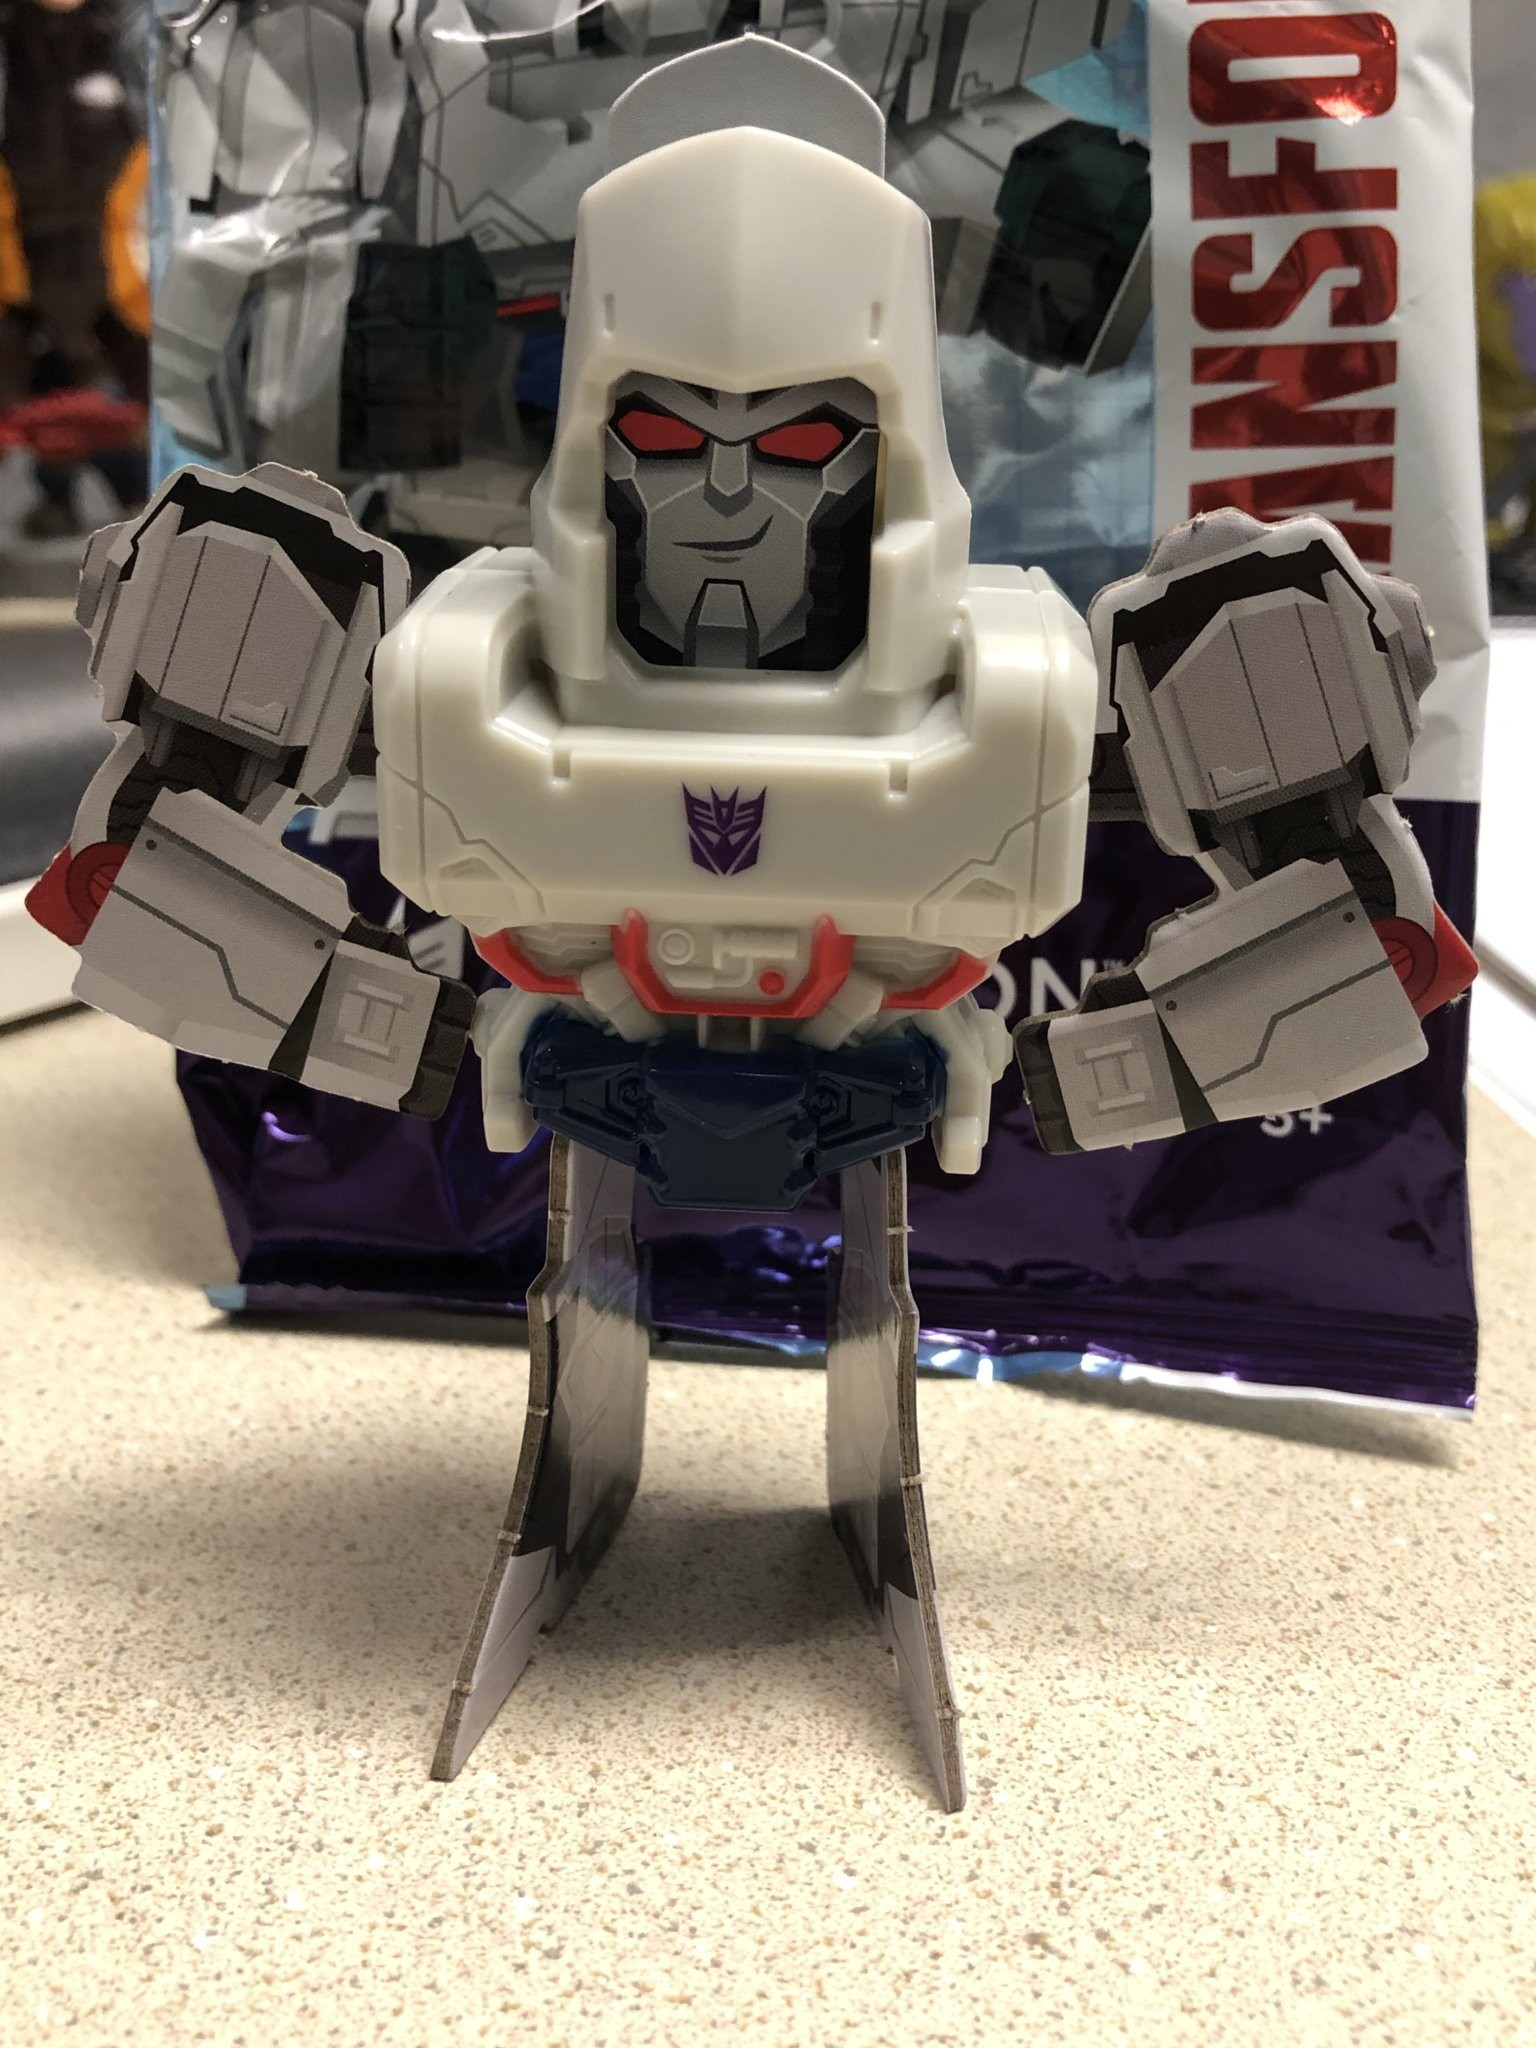 Transformers News: Wendy's has New Kids Meal Toys Featuring Transformers and Cardboard